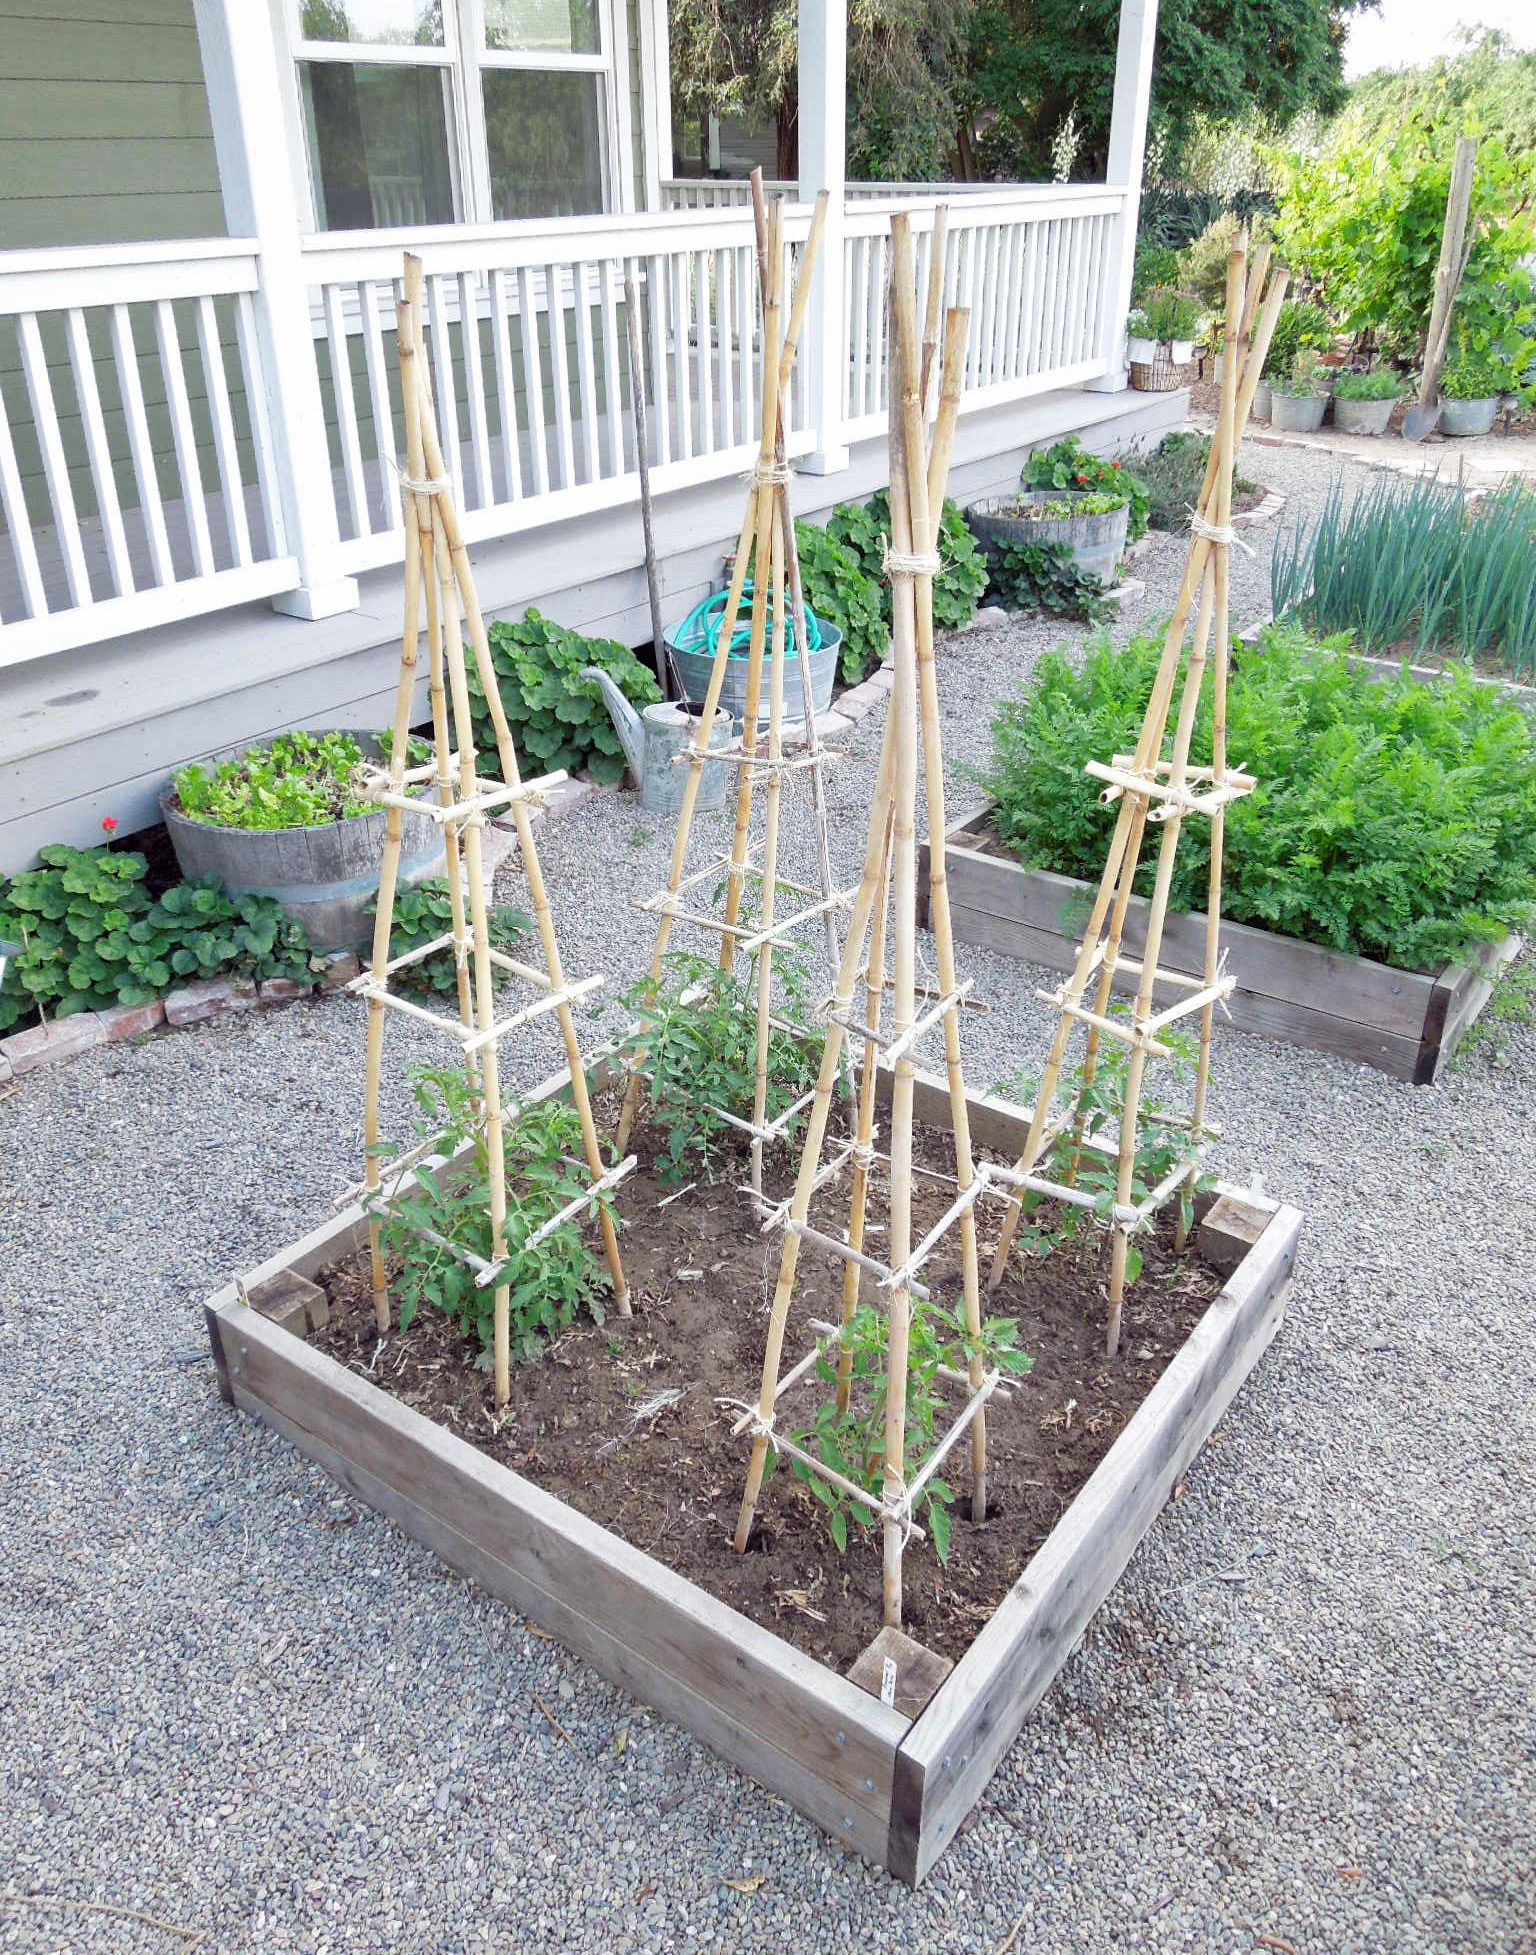 10 Ideas For Homemade Tomato Cages (Cheap & Easy